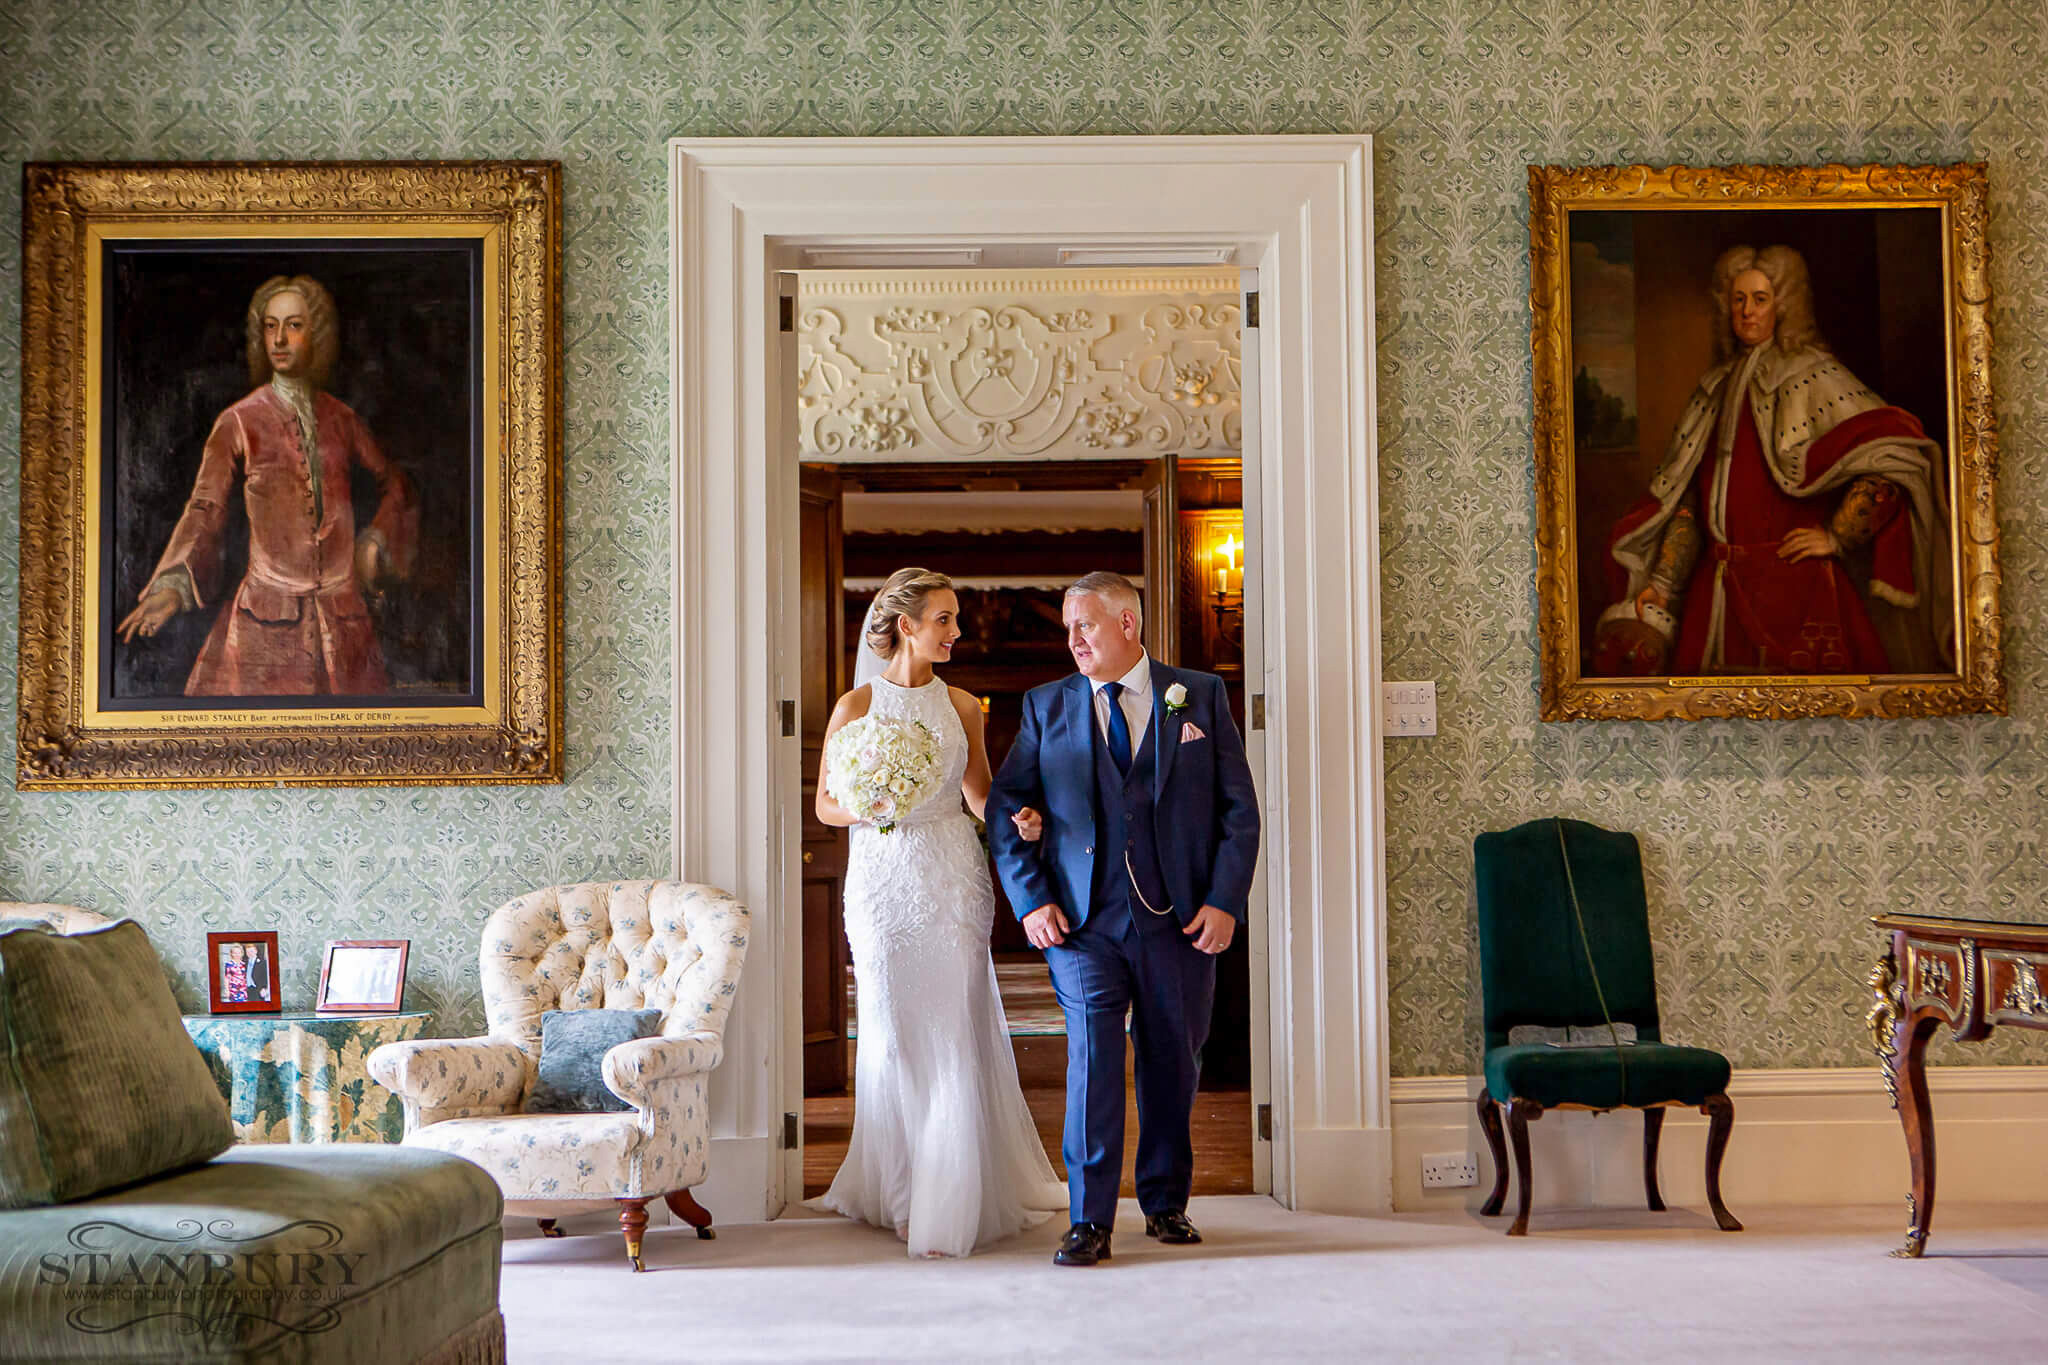 knowsley-hall-wedding-stanbury-photography-014